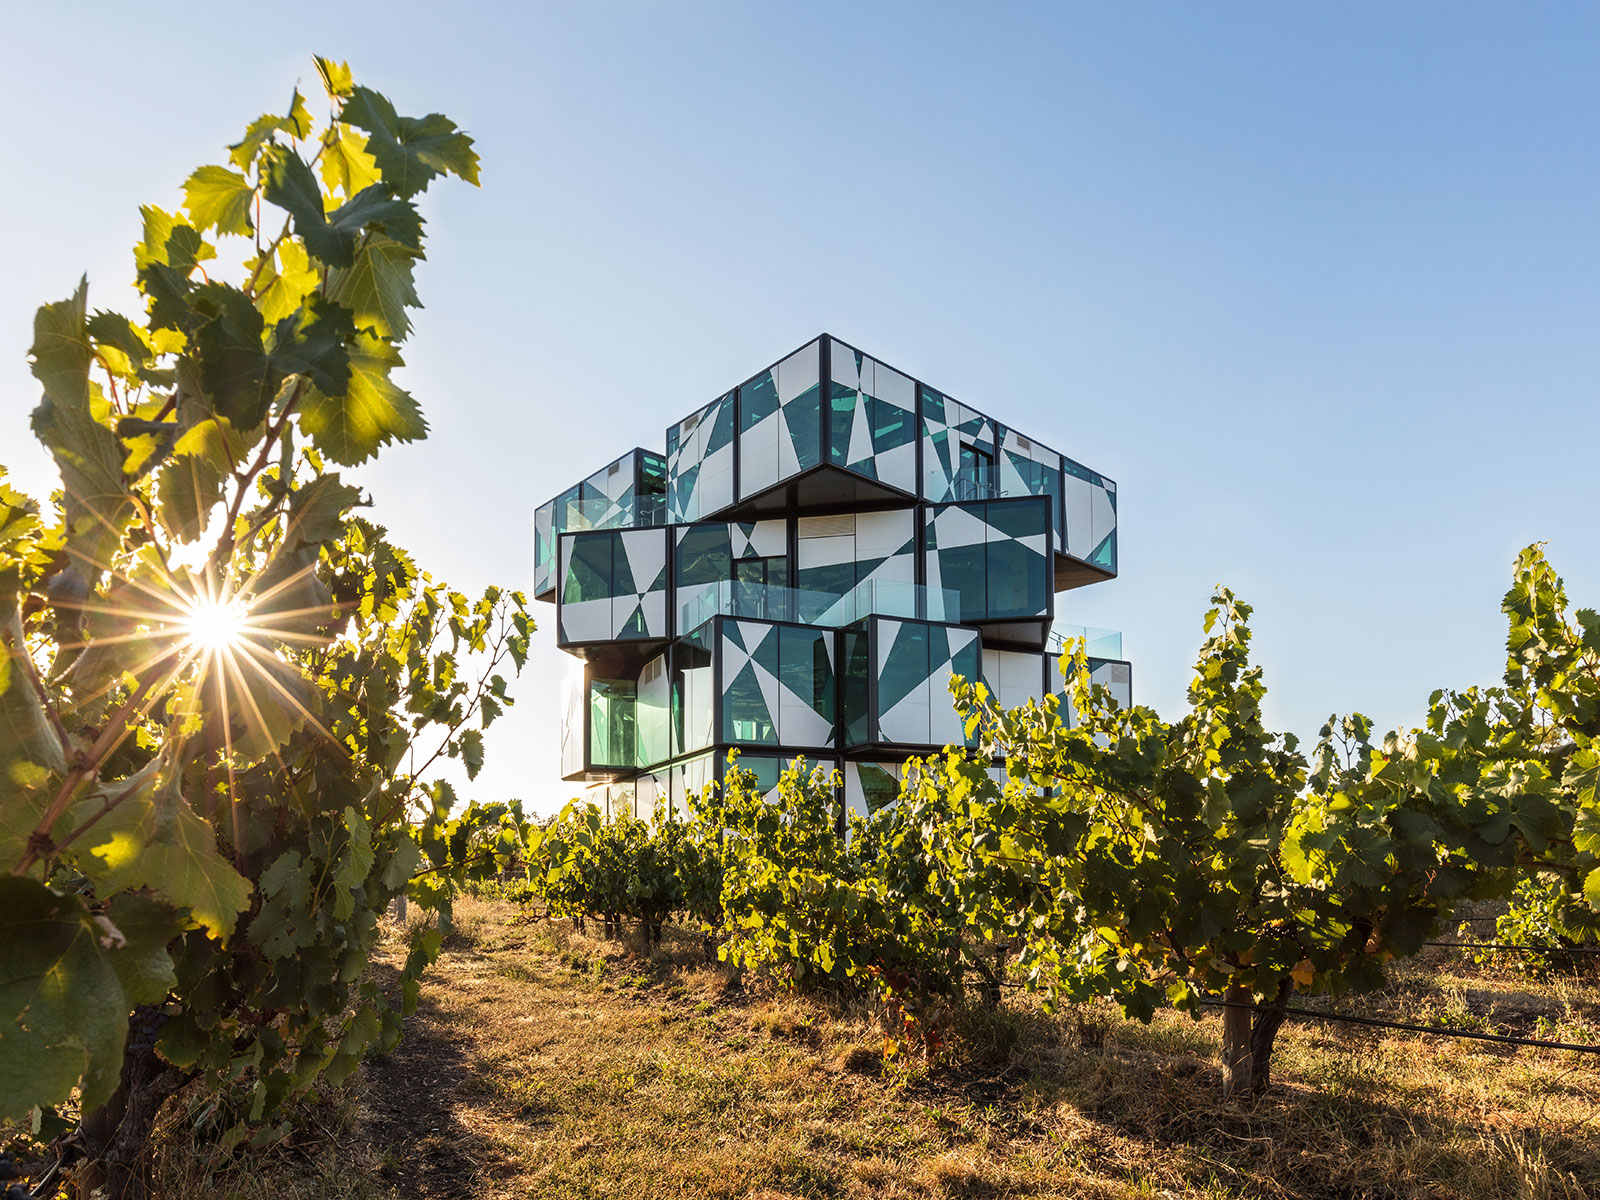 Five-Story Rubik's Cube Will House the World's Most Immersive Wine-Tasting Experience